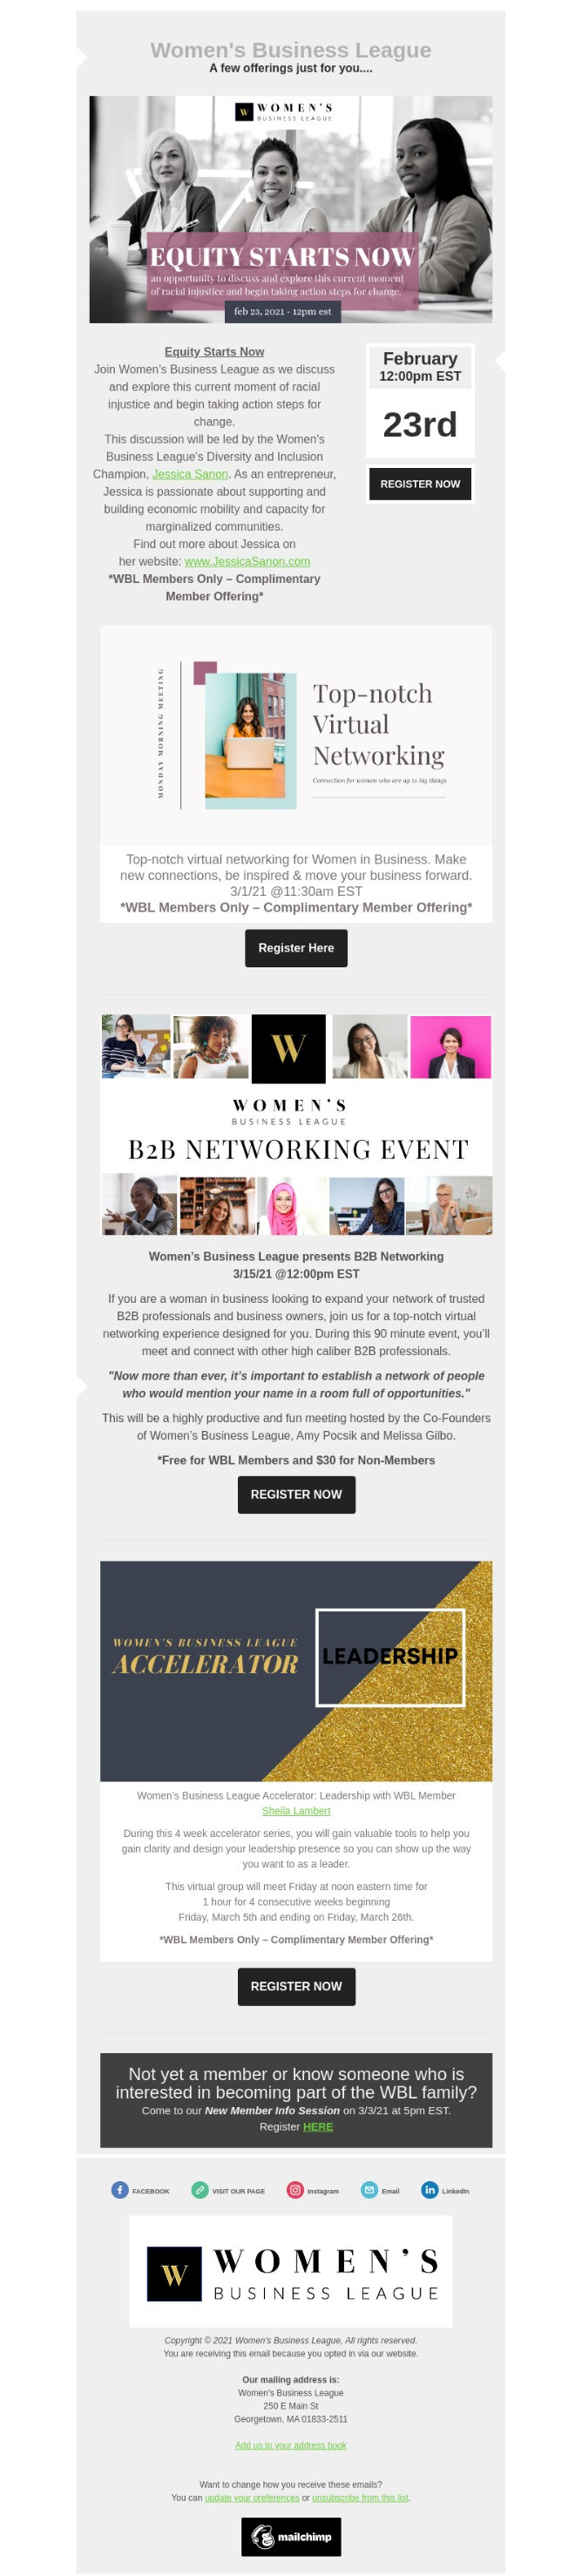 Women's Business League Events Email